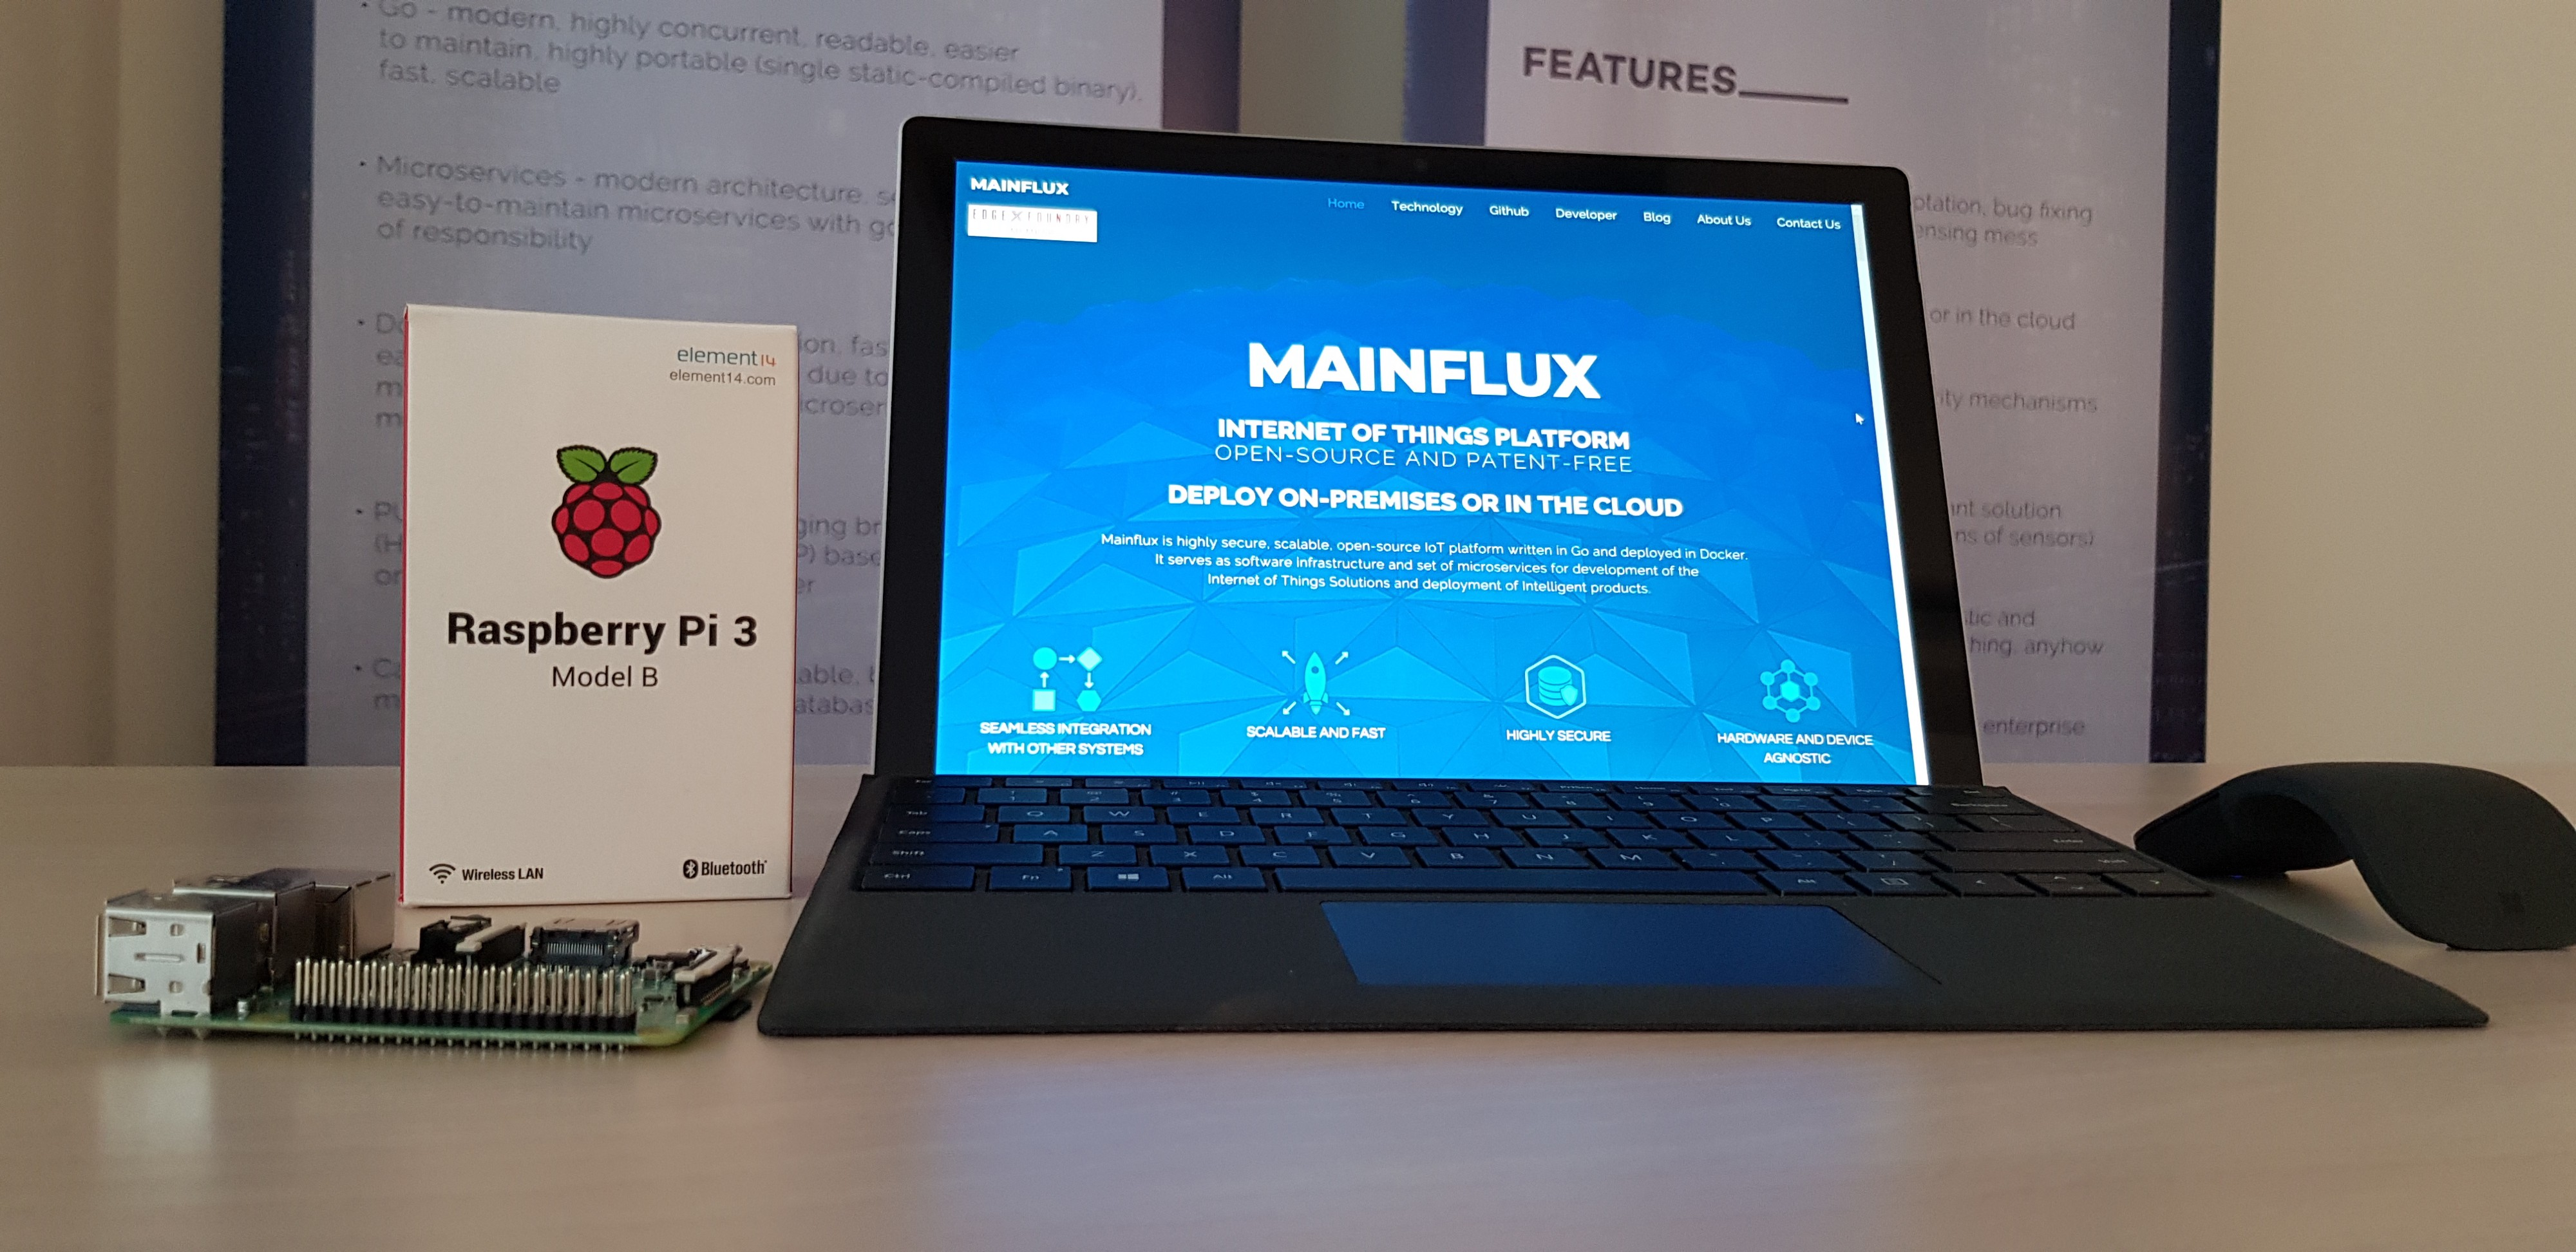 How to connect Raspberry Pi to Mainflux - Mainflux IoT